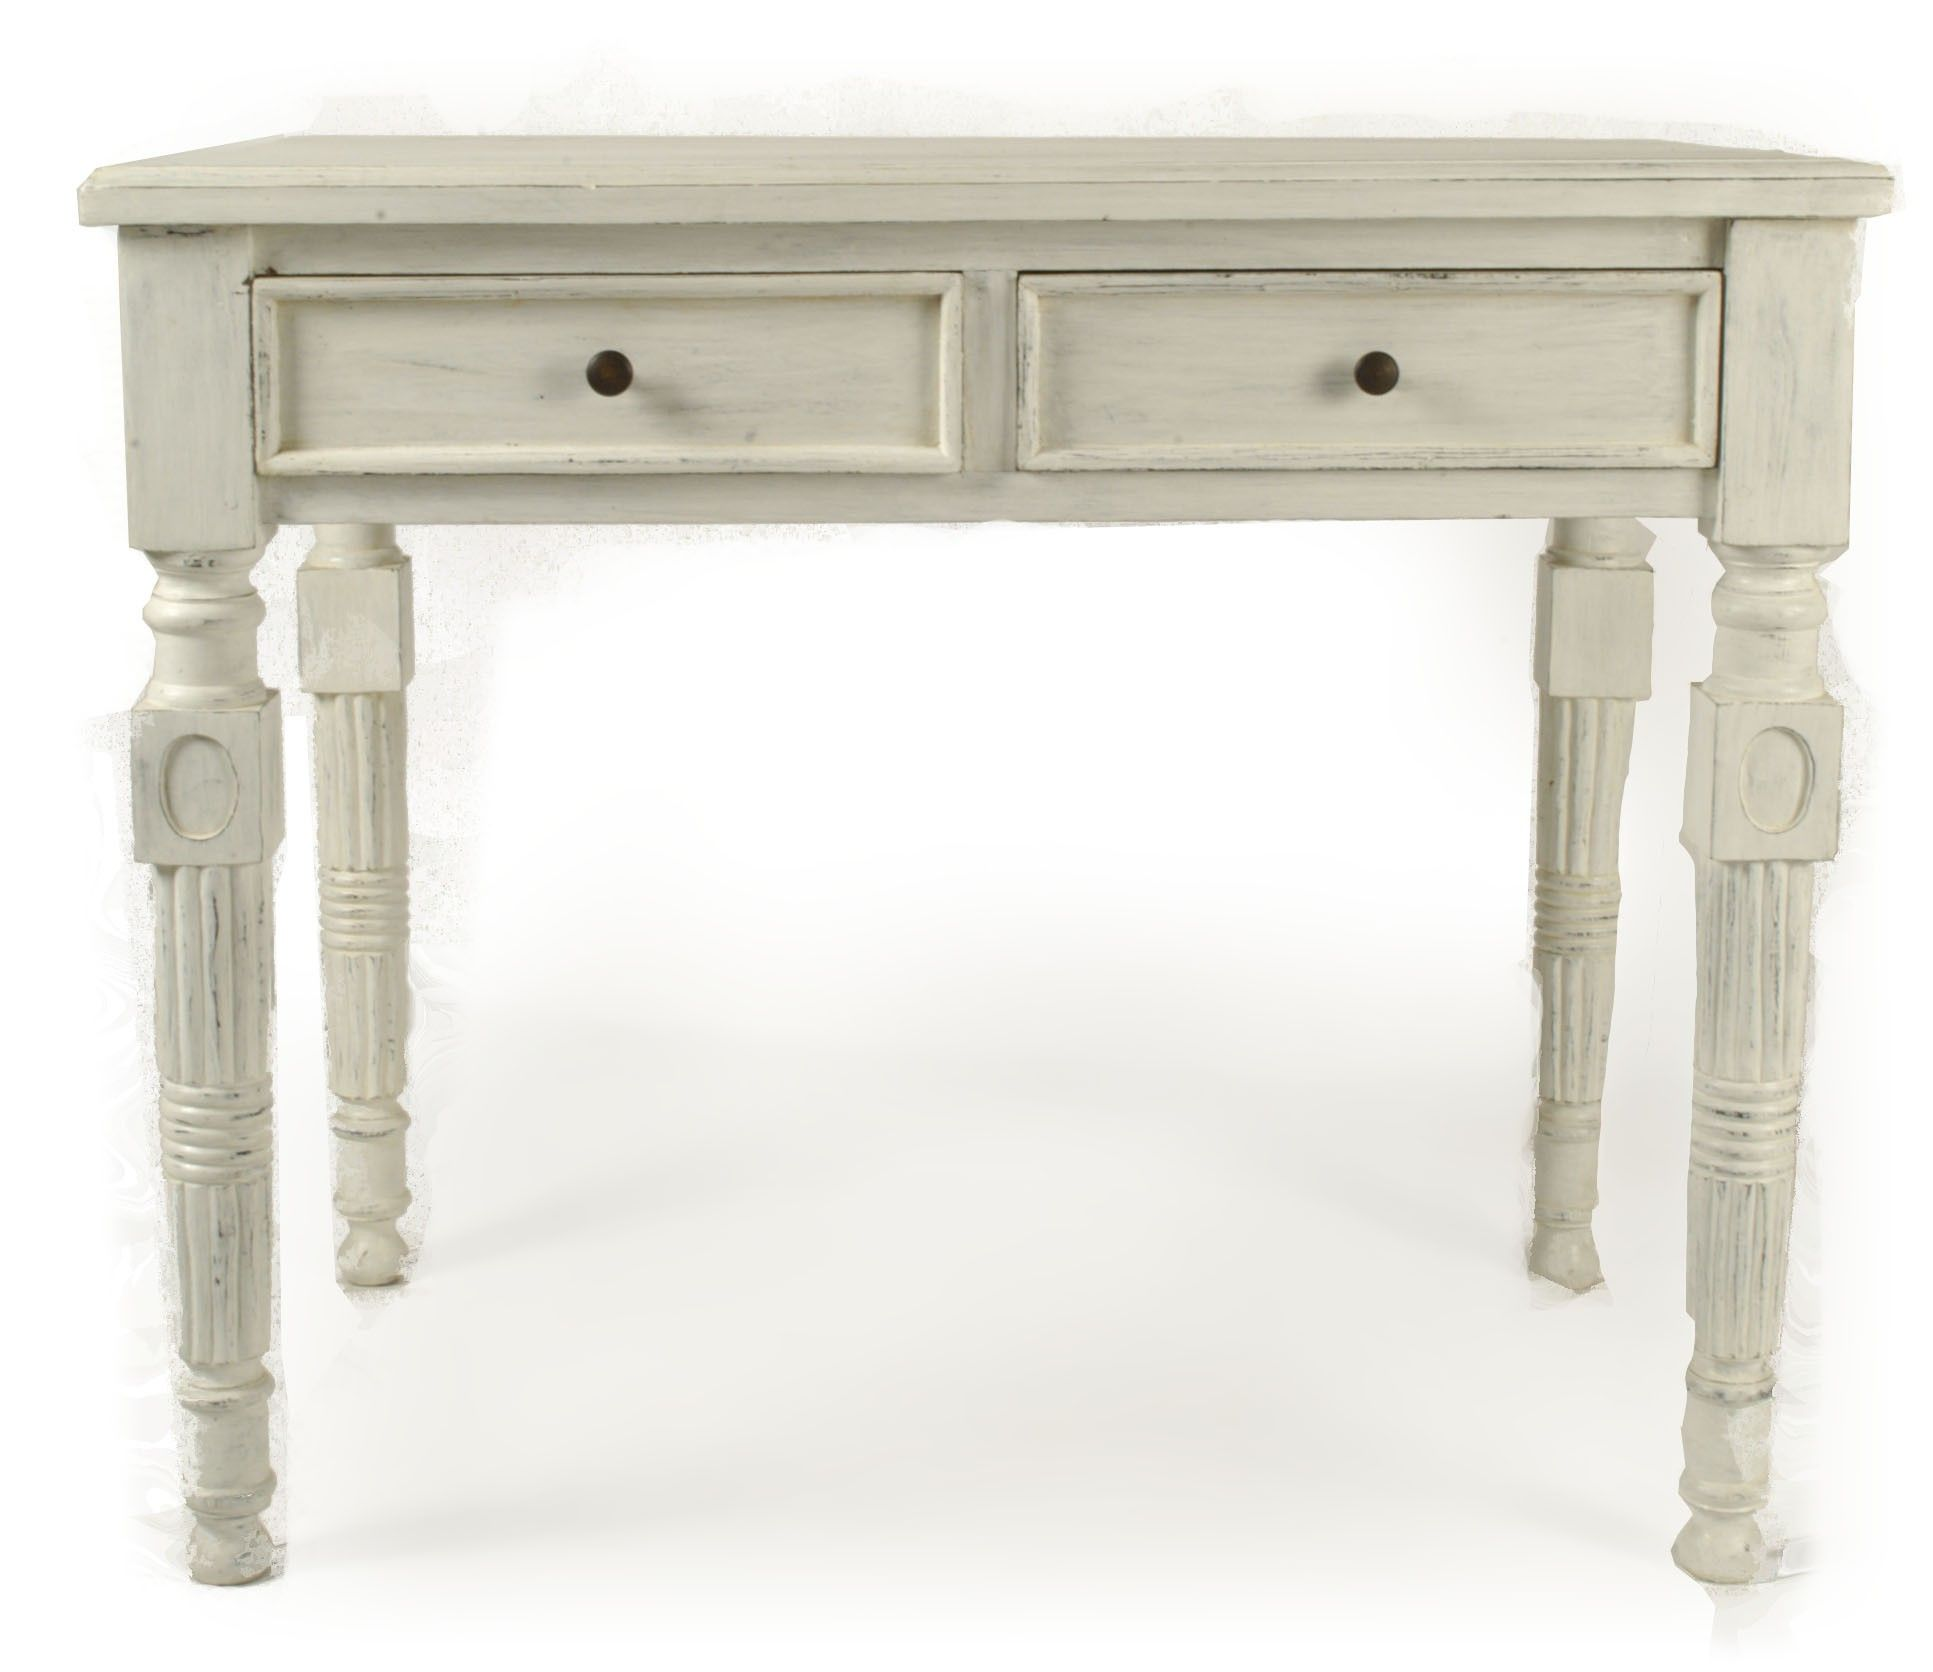 Charming Decorative Shabby Chic Hall Table This Lovely Table Has Been Individually  Handmade From Solid Mango Wood